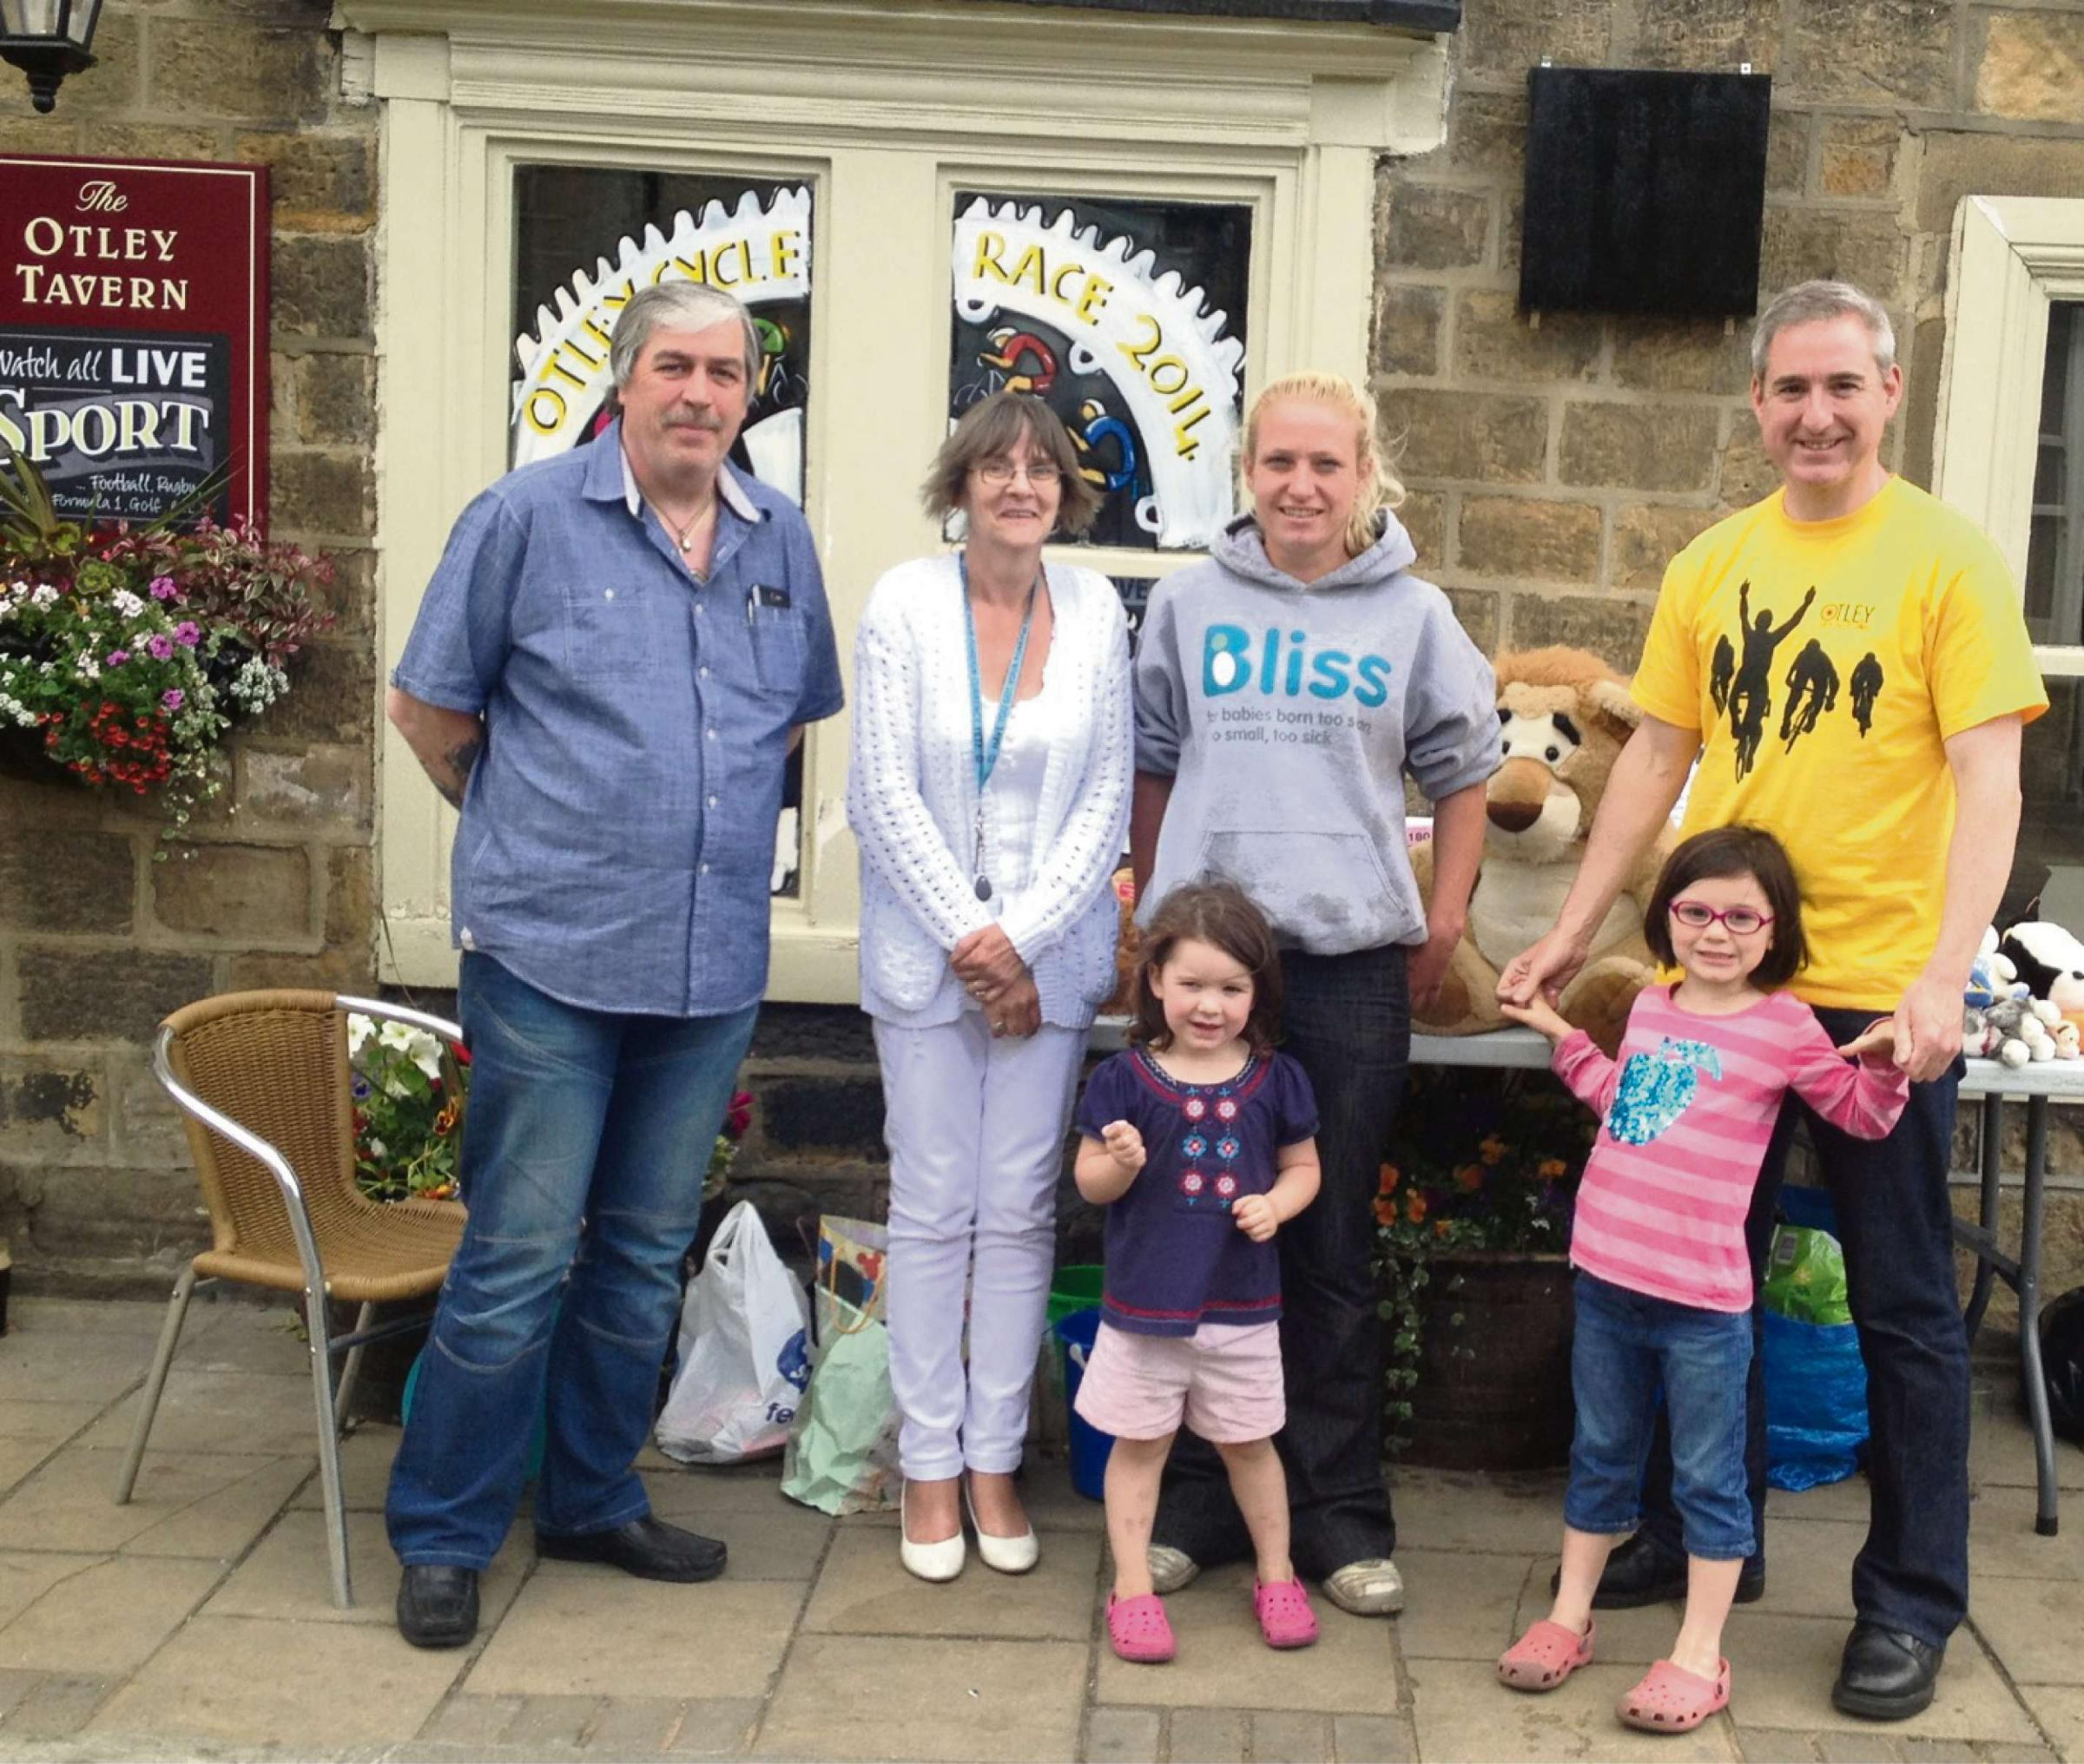 (Left to Right): Peter and Fiona Jackson, licensees of The Otley Tavern, with Bliss fundraiser Mel Metcalfe and MP Greg Mulholland, joined by two of his daughters.